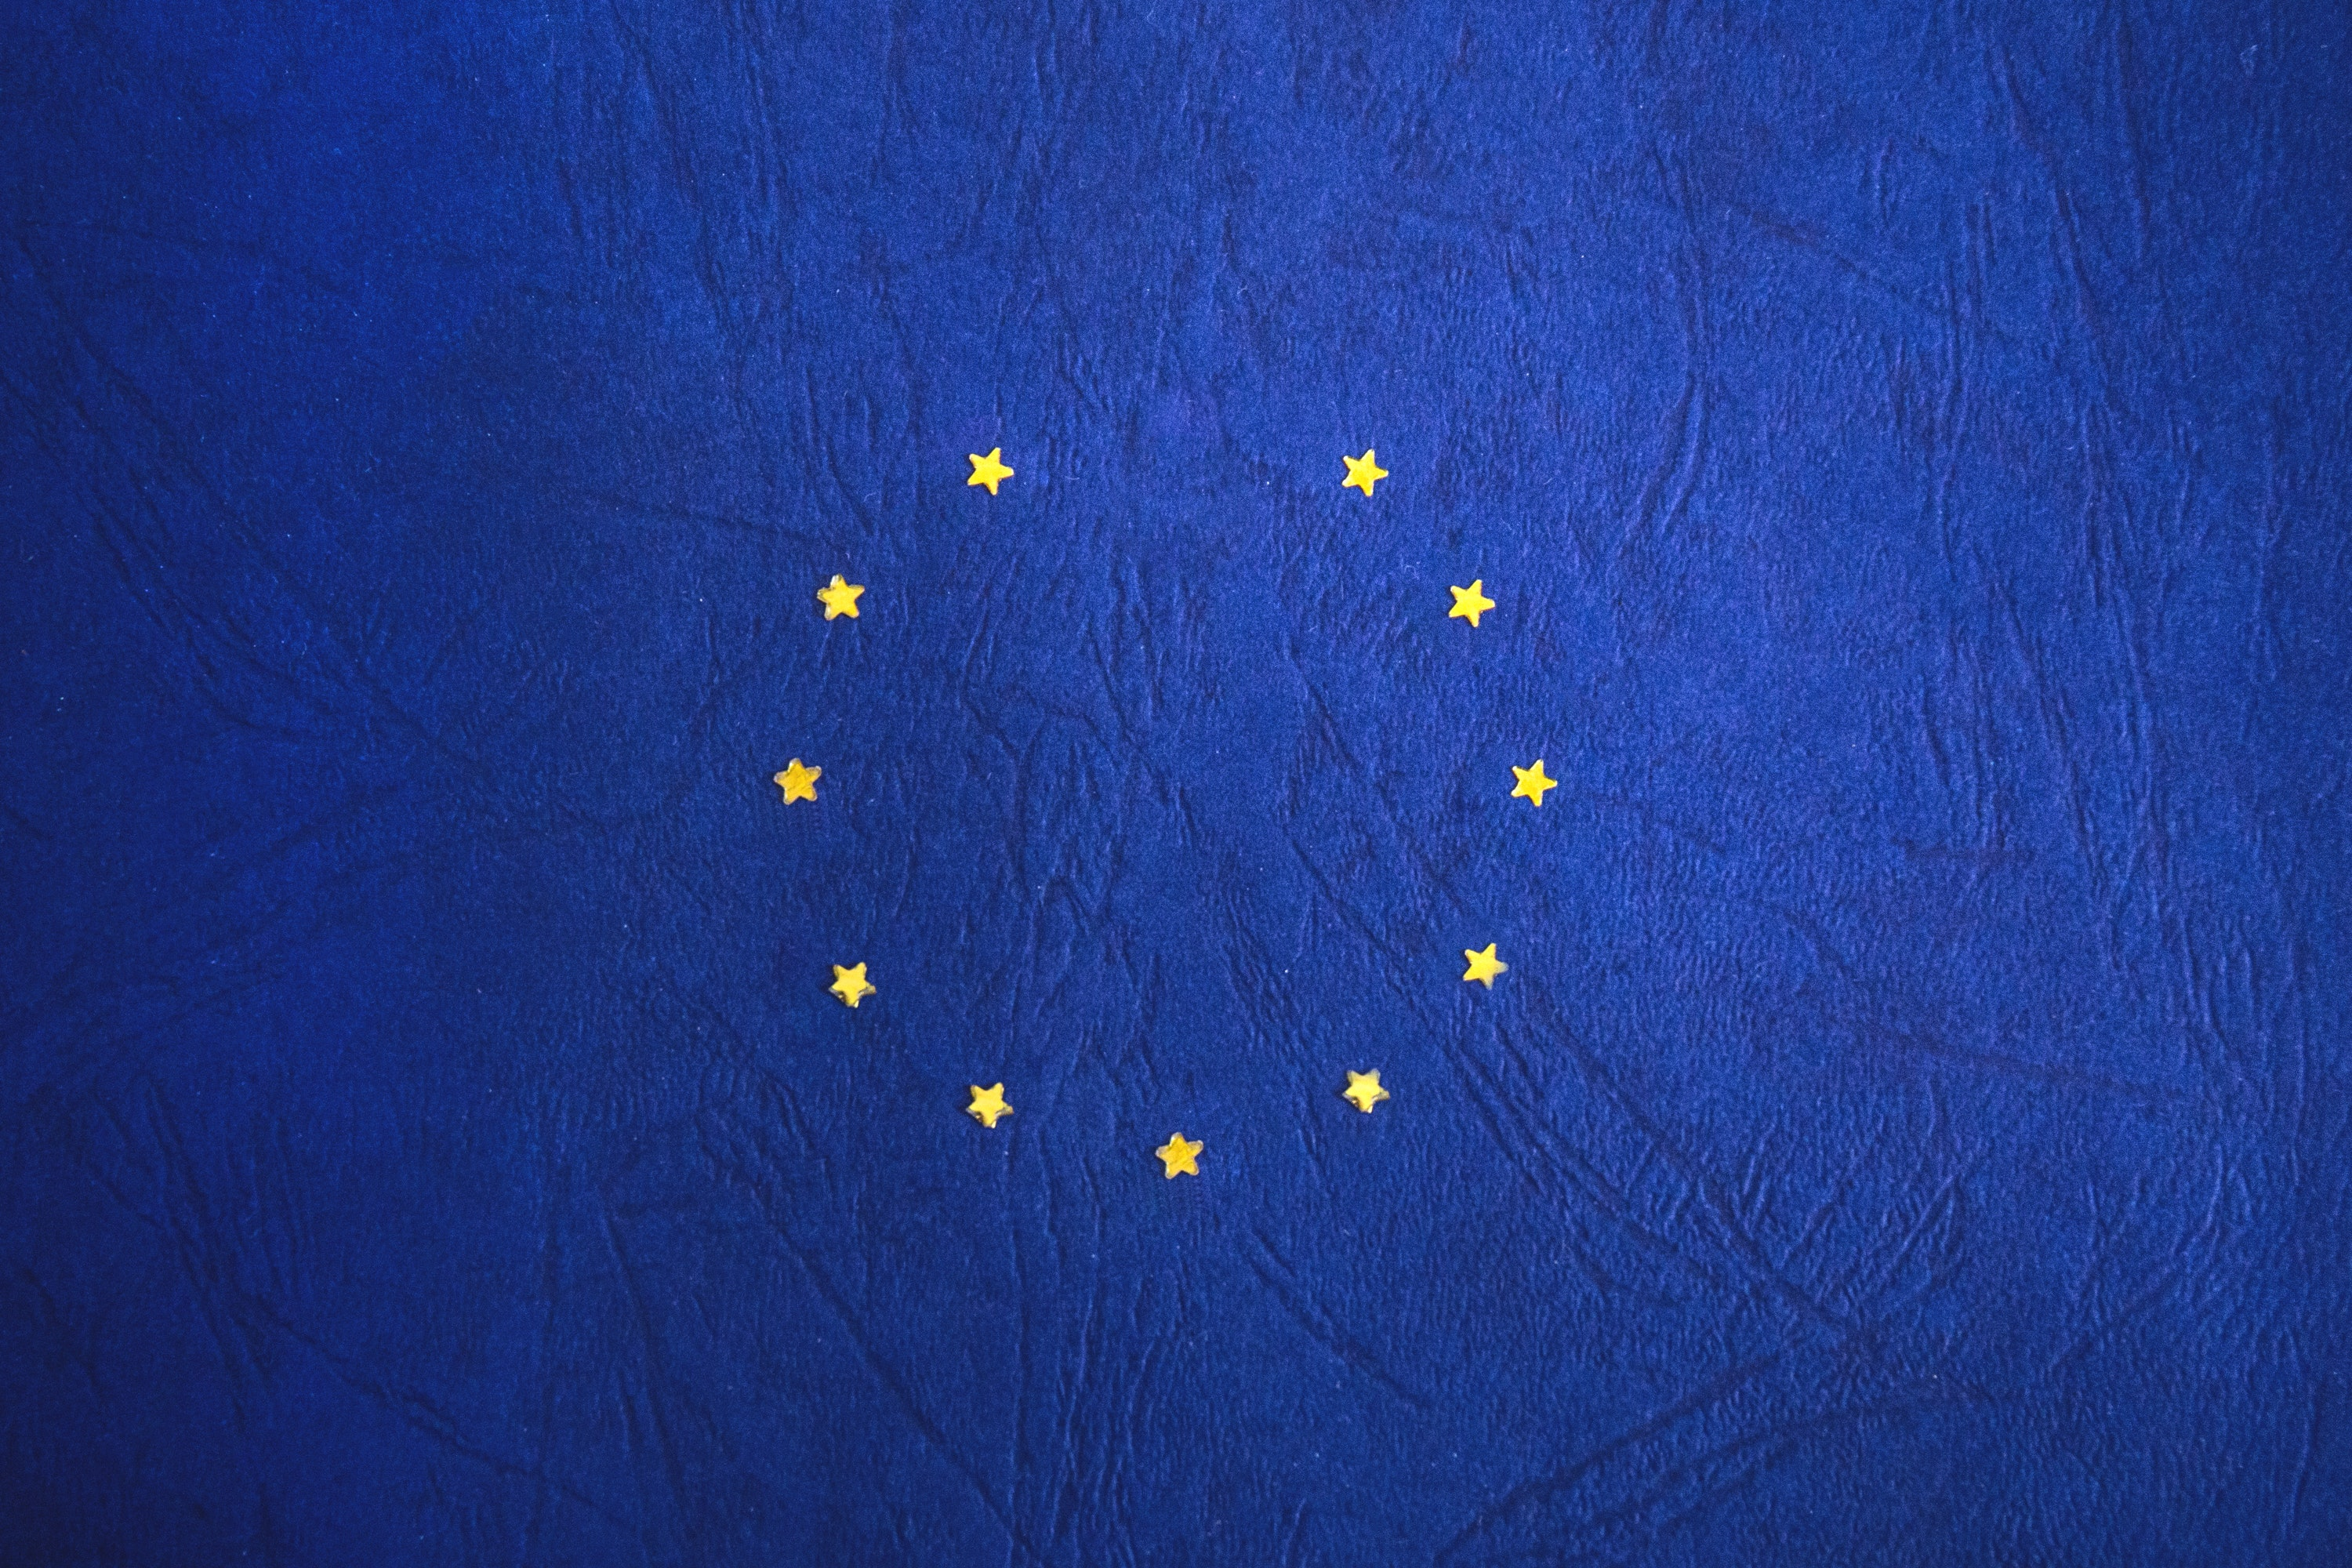 brexit-eu-europe-flag